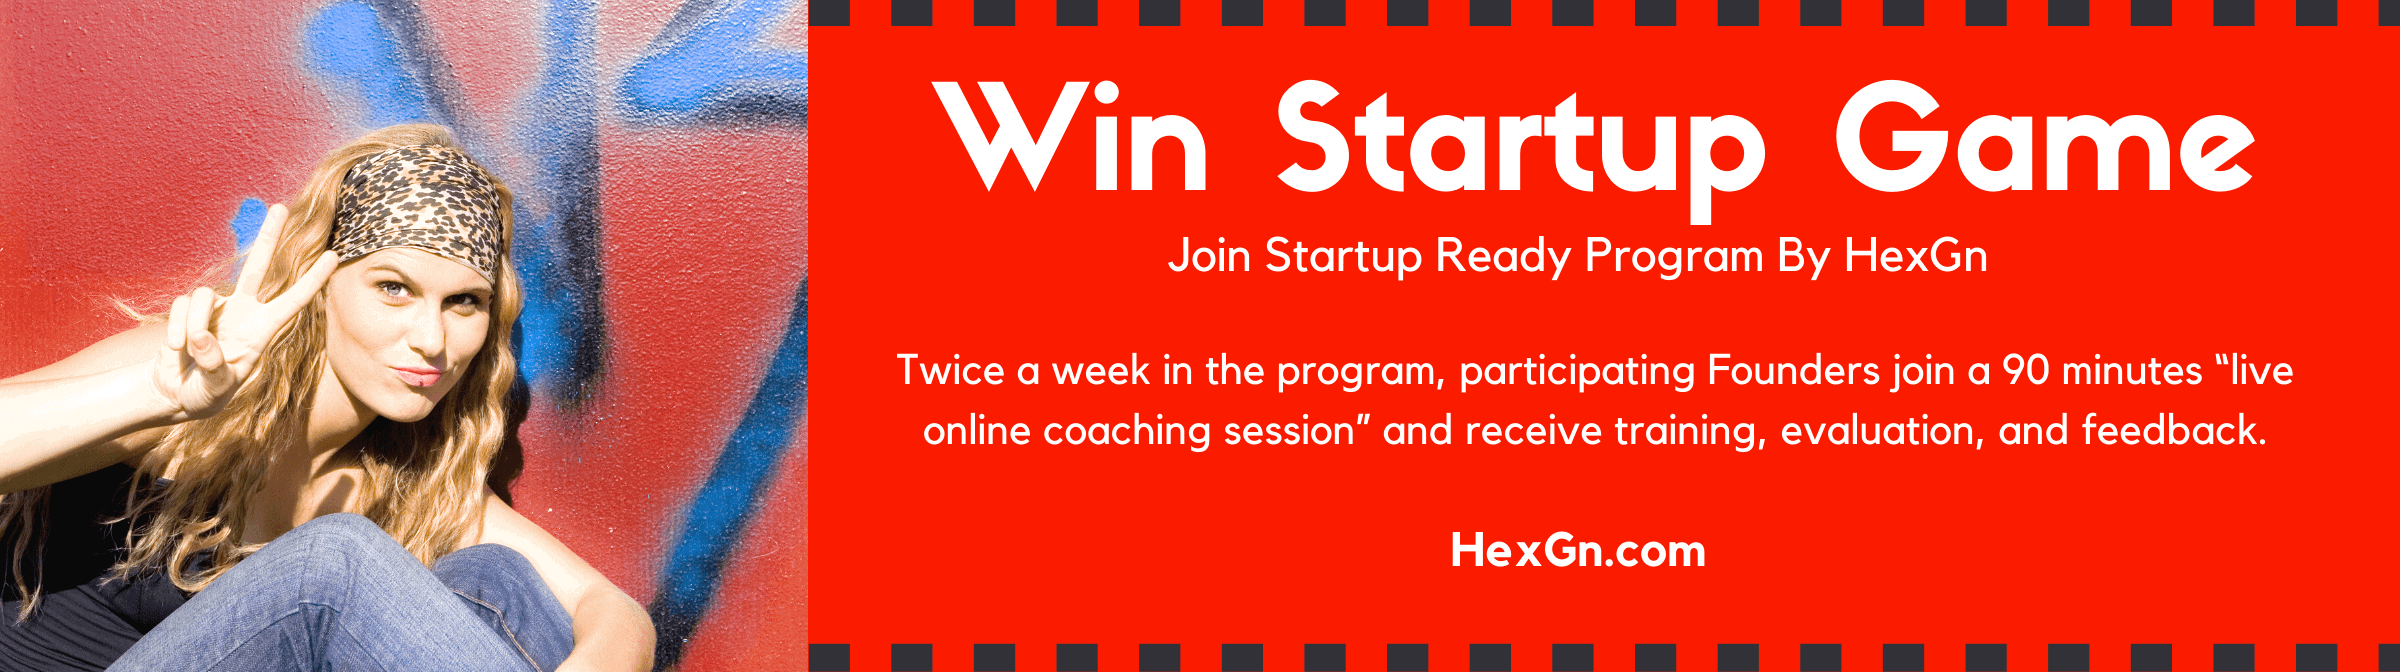 "Twice a week in the program, participating Founders join a 2 hours ""live online coaching session"" and receive training, evaluation, and feedback. After each session, the founders then build their businesses for the rest of the week"